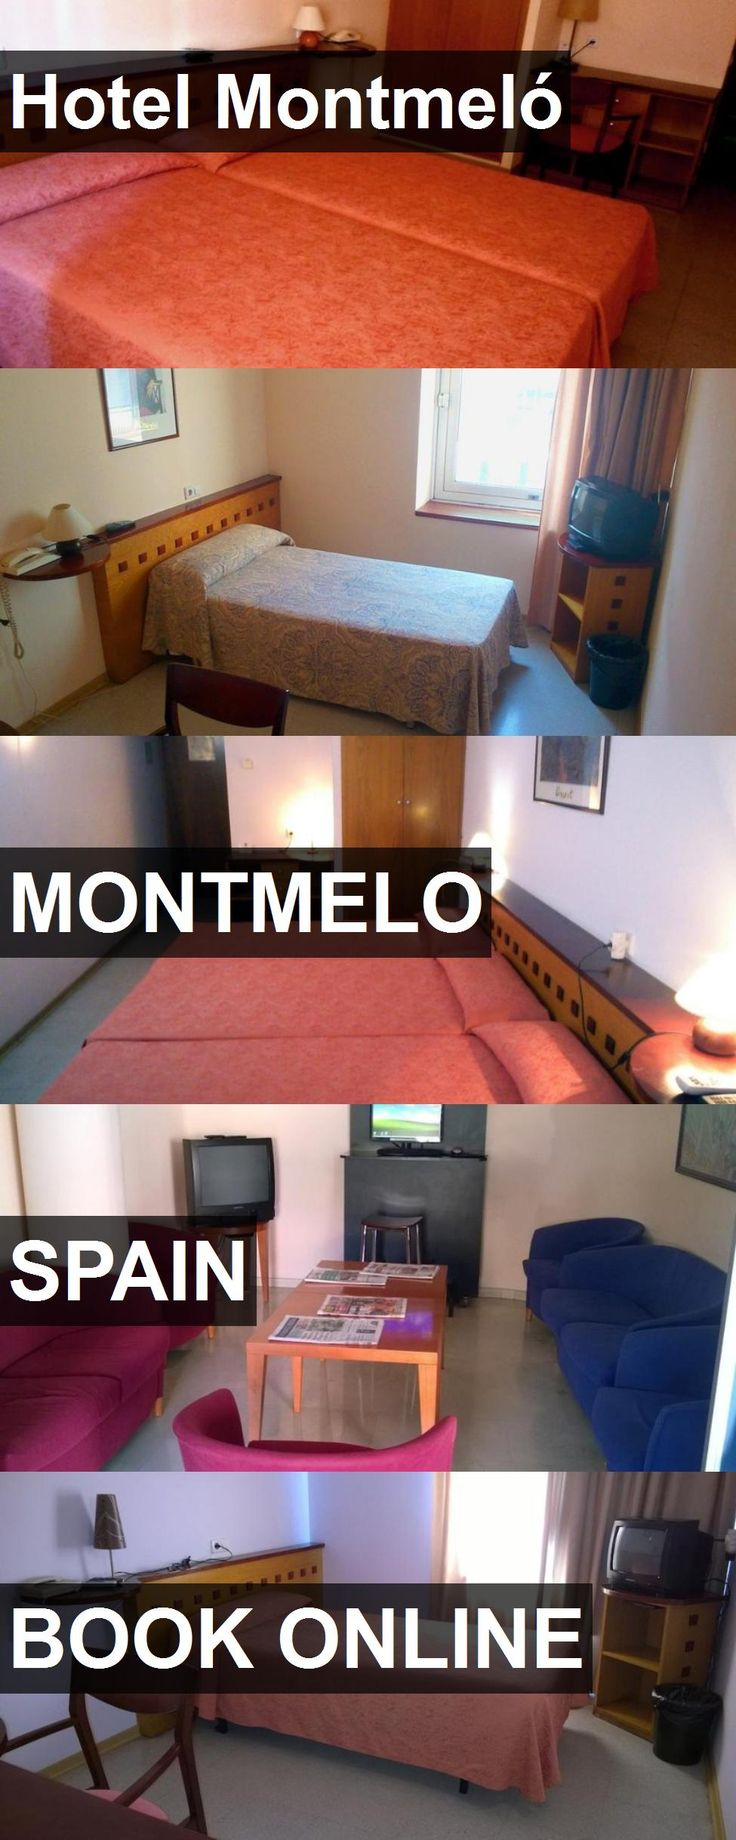 Hotel Hotel Montmeló in Montmelo, Spain. For more information, photos, reviews and best prices please follow the link. #Spain #Montmelo #HotelMontmeló #hotel #travel #vacation